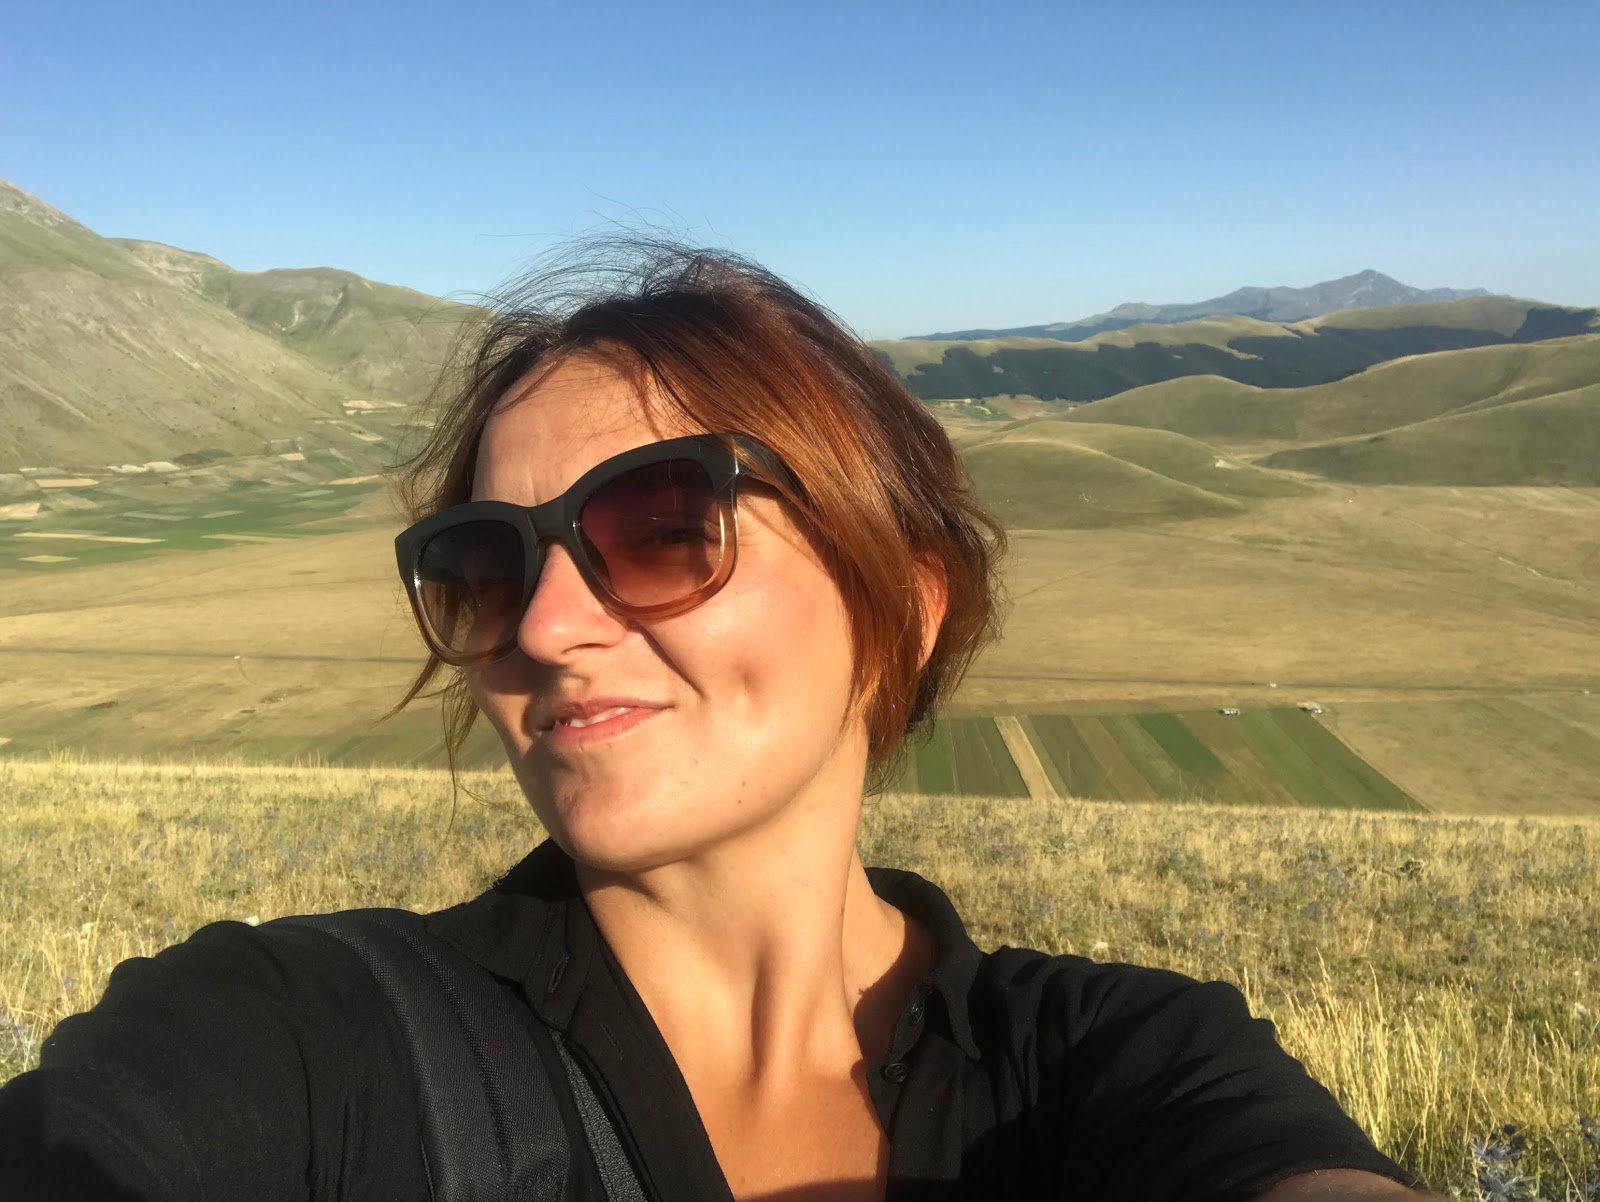 Monterail employee on sabbatical leave - Marzena in Italy.